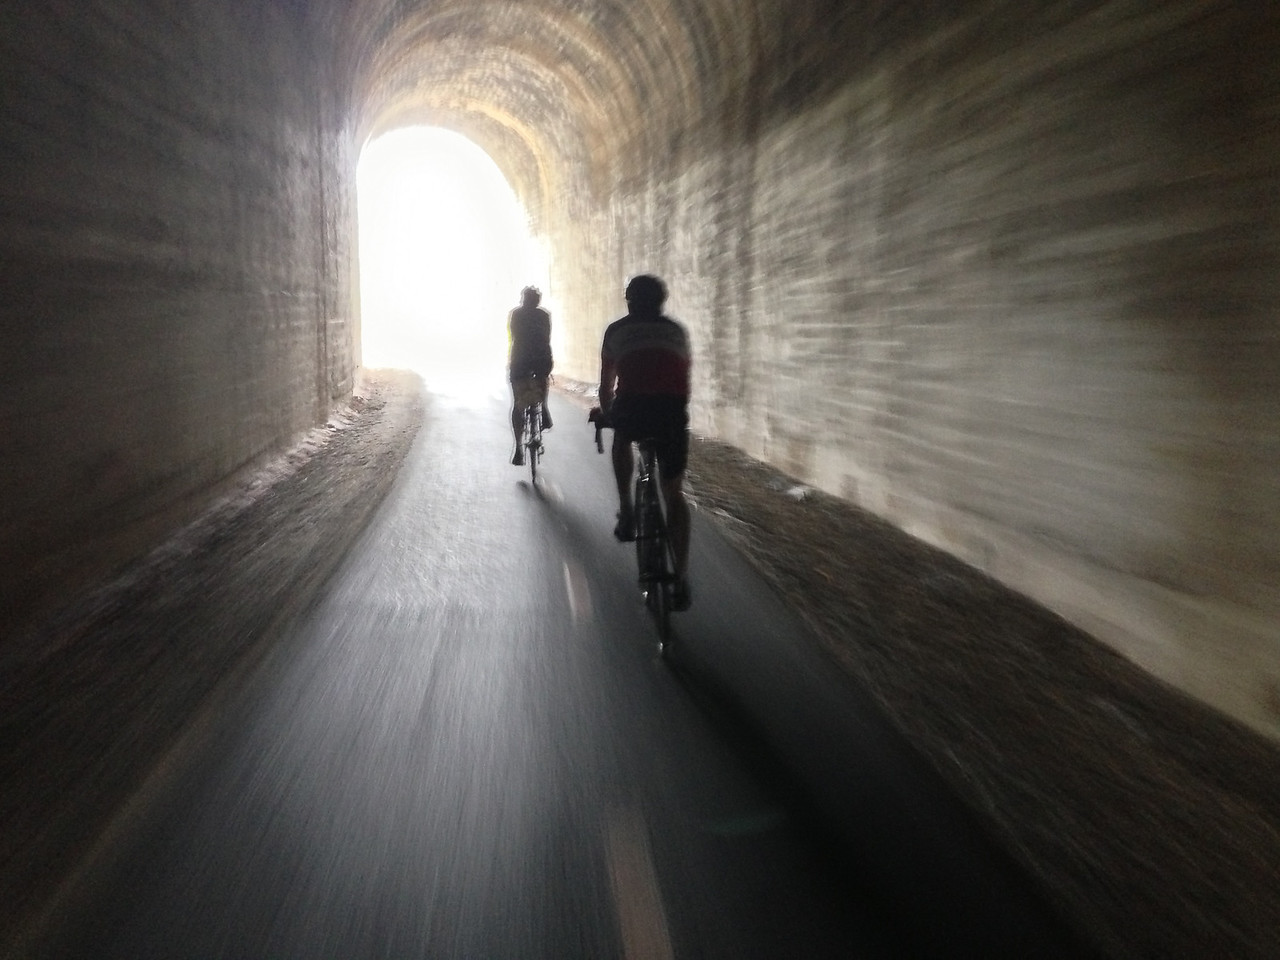 Elin and Guy riding to the light.